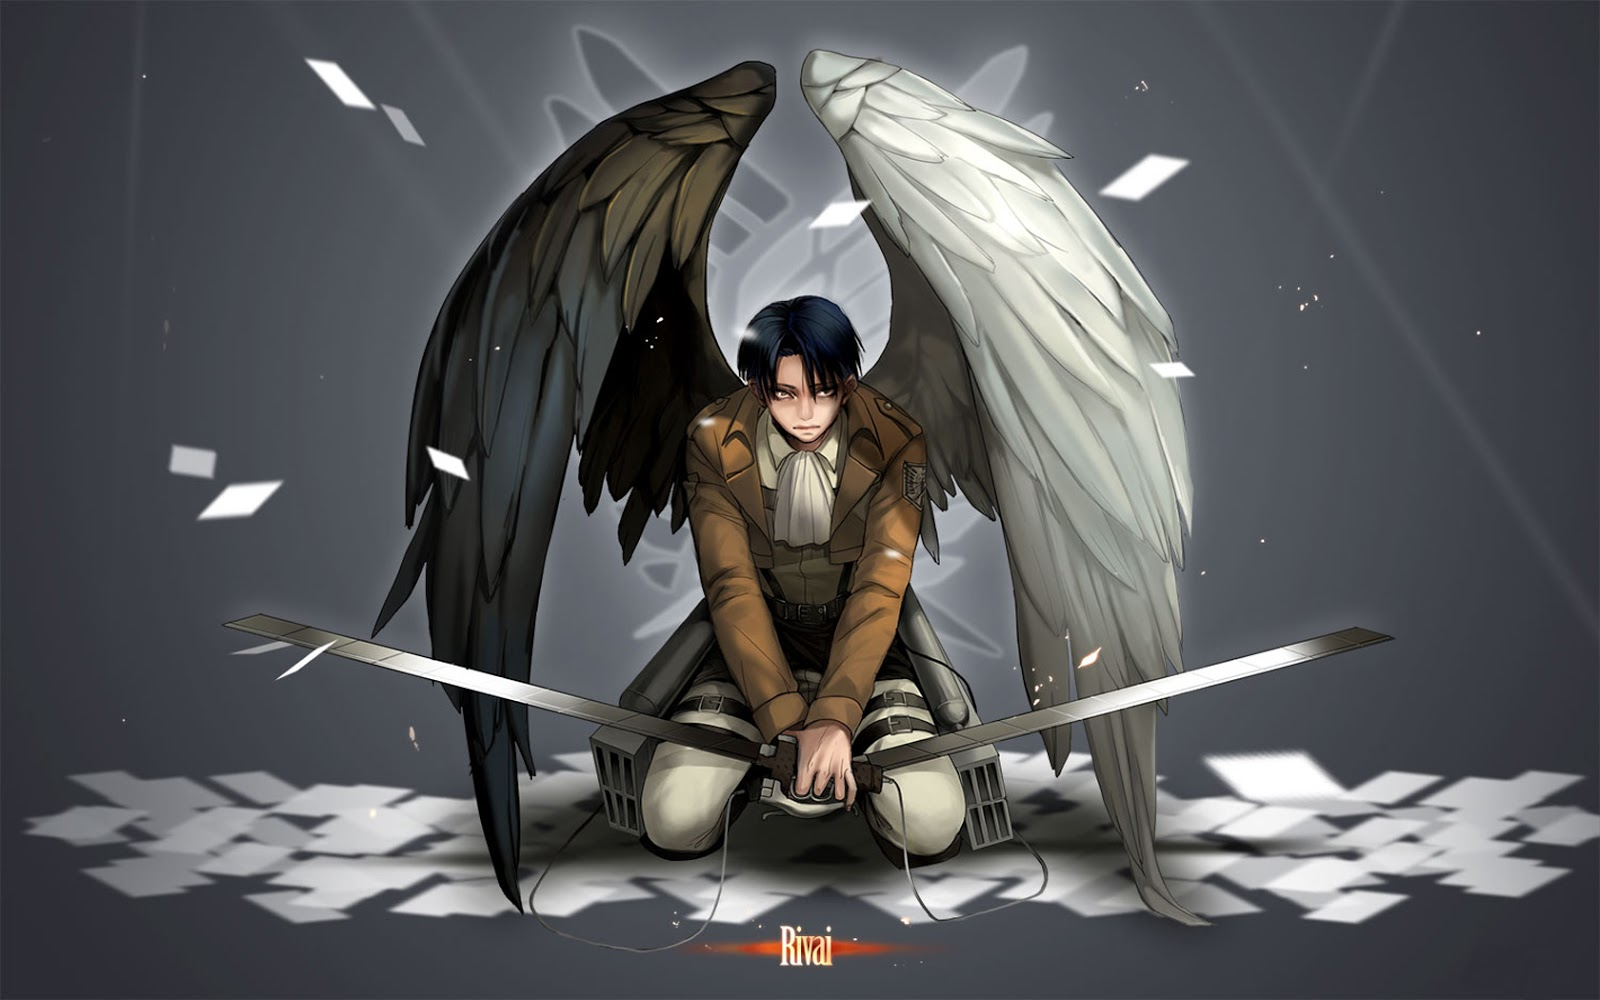 levi angel wings attack on titan wallpaper 1680x1050jpg 1600x1000